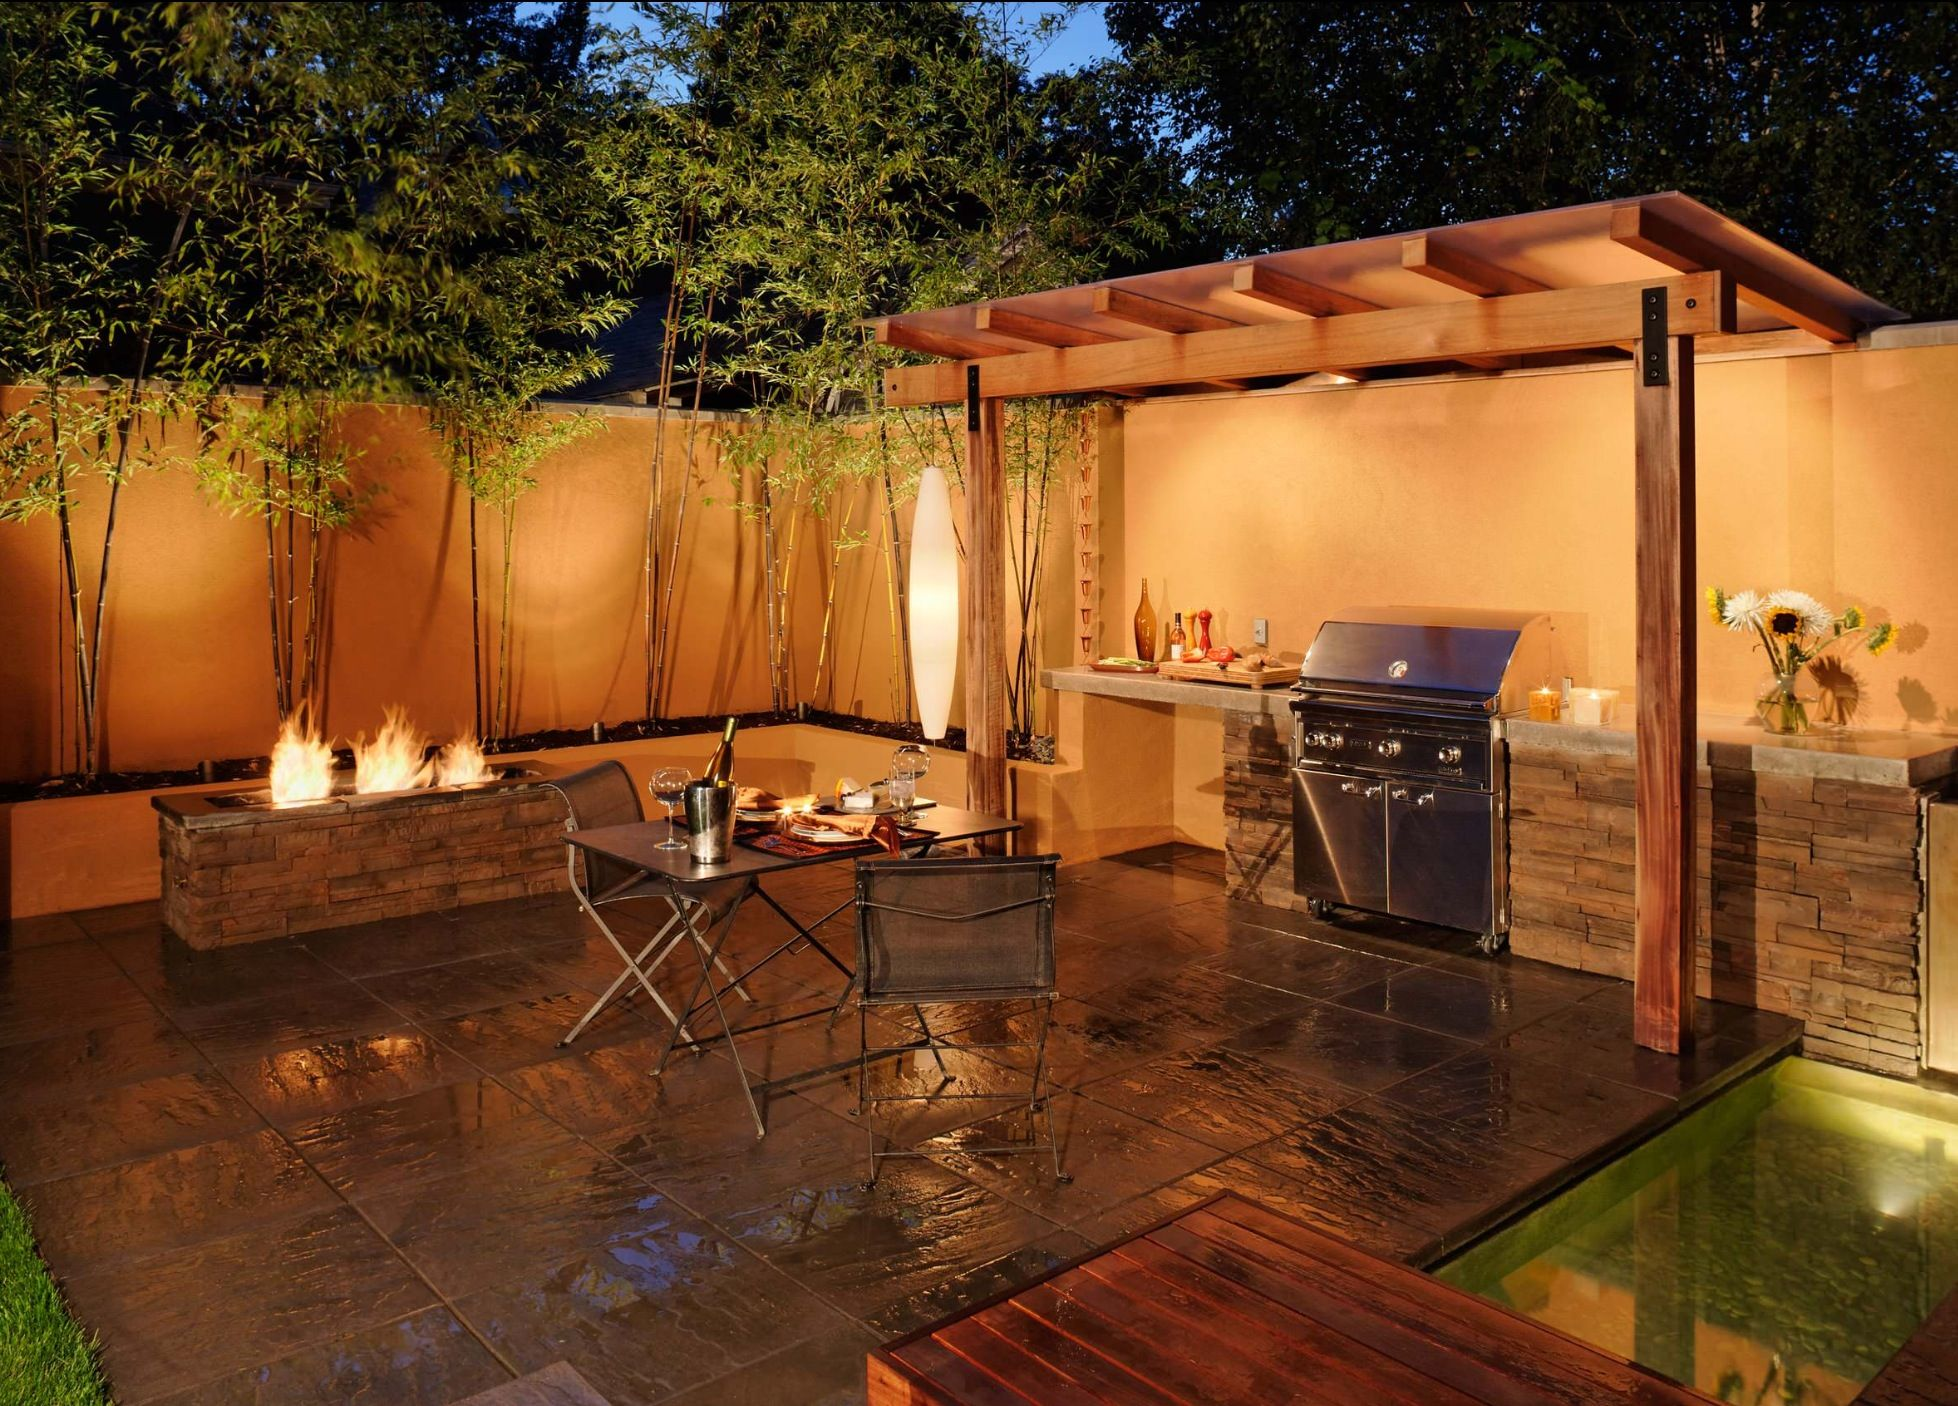 earth wood fire water metal this simple minimal esque space